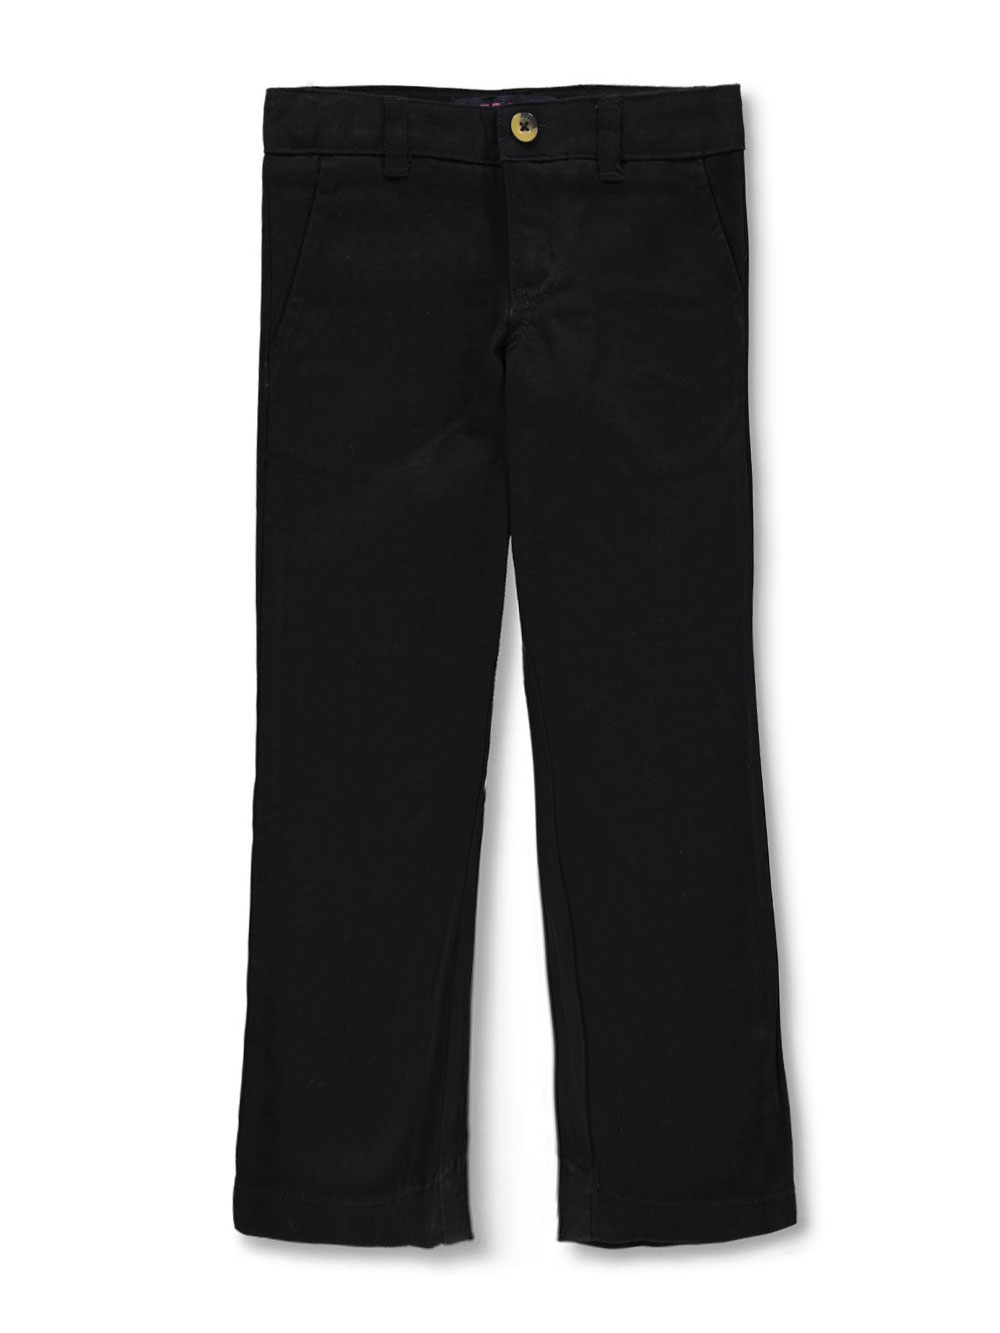 Girls' Straight Leg Pants